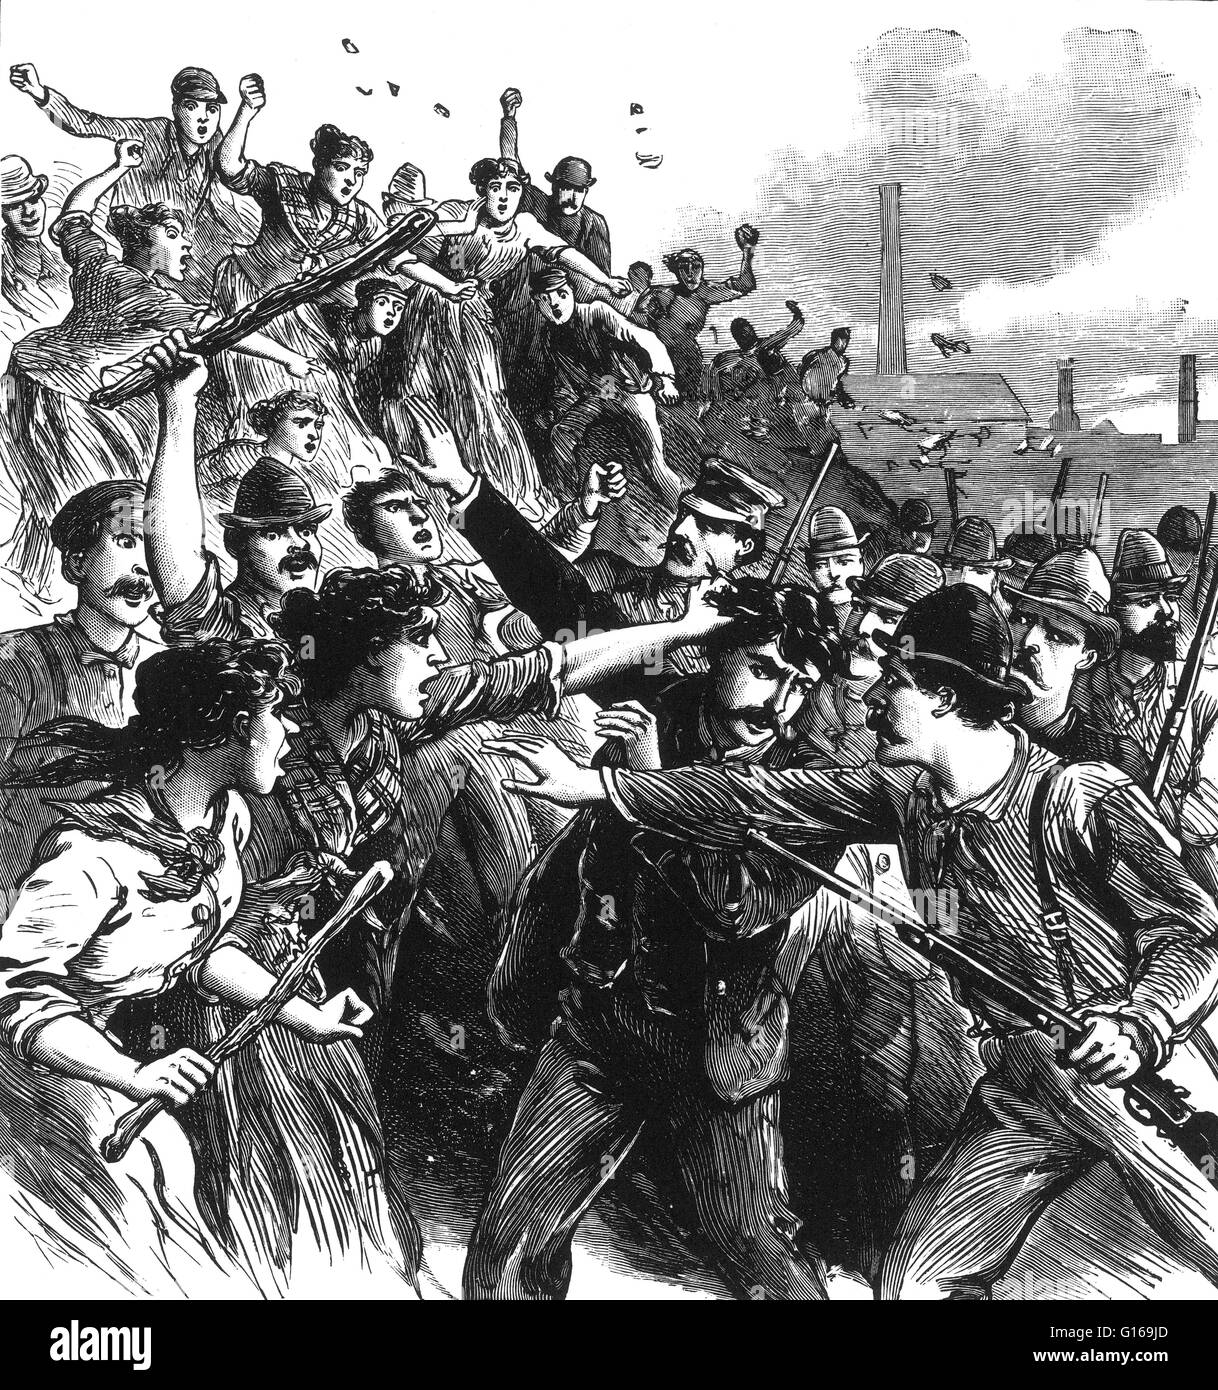 The Homestead Strike was an industrial lockout and strike which ...